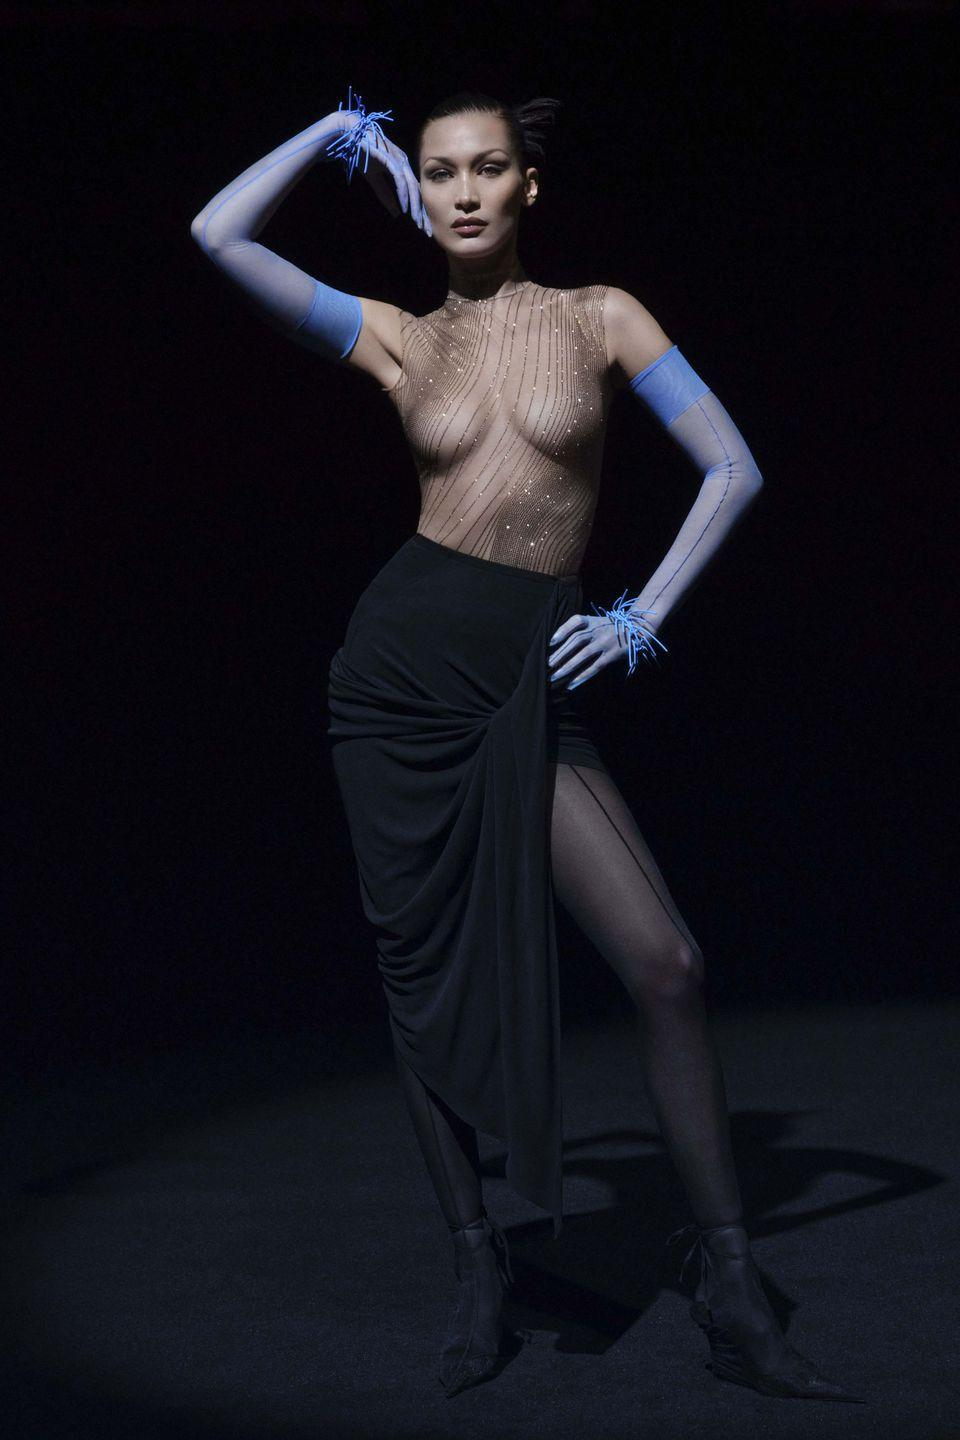 "<p>Mugler presented the second part of its spring/summer 2021 collection last night, having revealed the first during the show schedule back in October. This new approach is part of a new strategy for the house which allows retail partners to purchase and<br>sell the collection in two parts. Presented via a six-minute film that featured the likes of Bella Hadid, Irina Shayk, Alek Wek and Hunter Schafer, the collection was a ""no-holds-barred expression of electric Mugler energy,"" the house explained in its show notes. Scroll through to see highlights from the collection, or <a href=""https://www.youtube.com/watch?v=2glLbCTR22E"" rel=""nofollow noopener"" target=""_blank"" data-ylk=""slk:watch the show in its entirety here"" class=""link rapid-noclick-resp"">watch the show in its entirety here</a>. </p>"